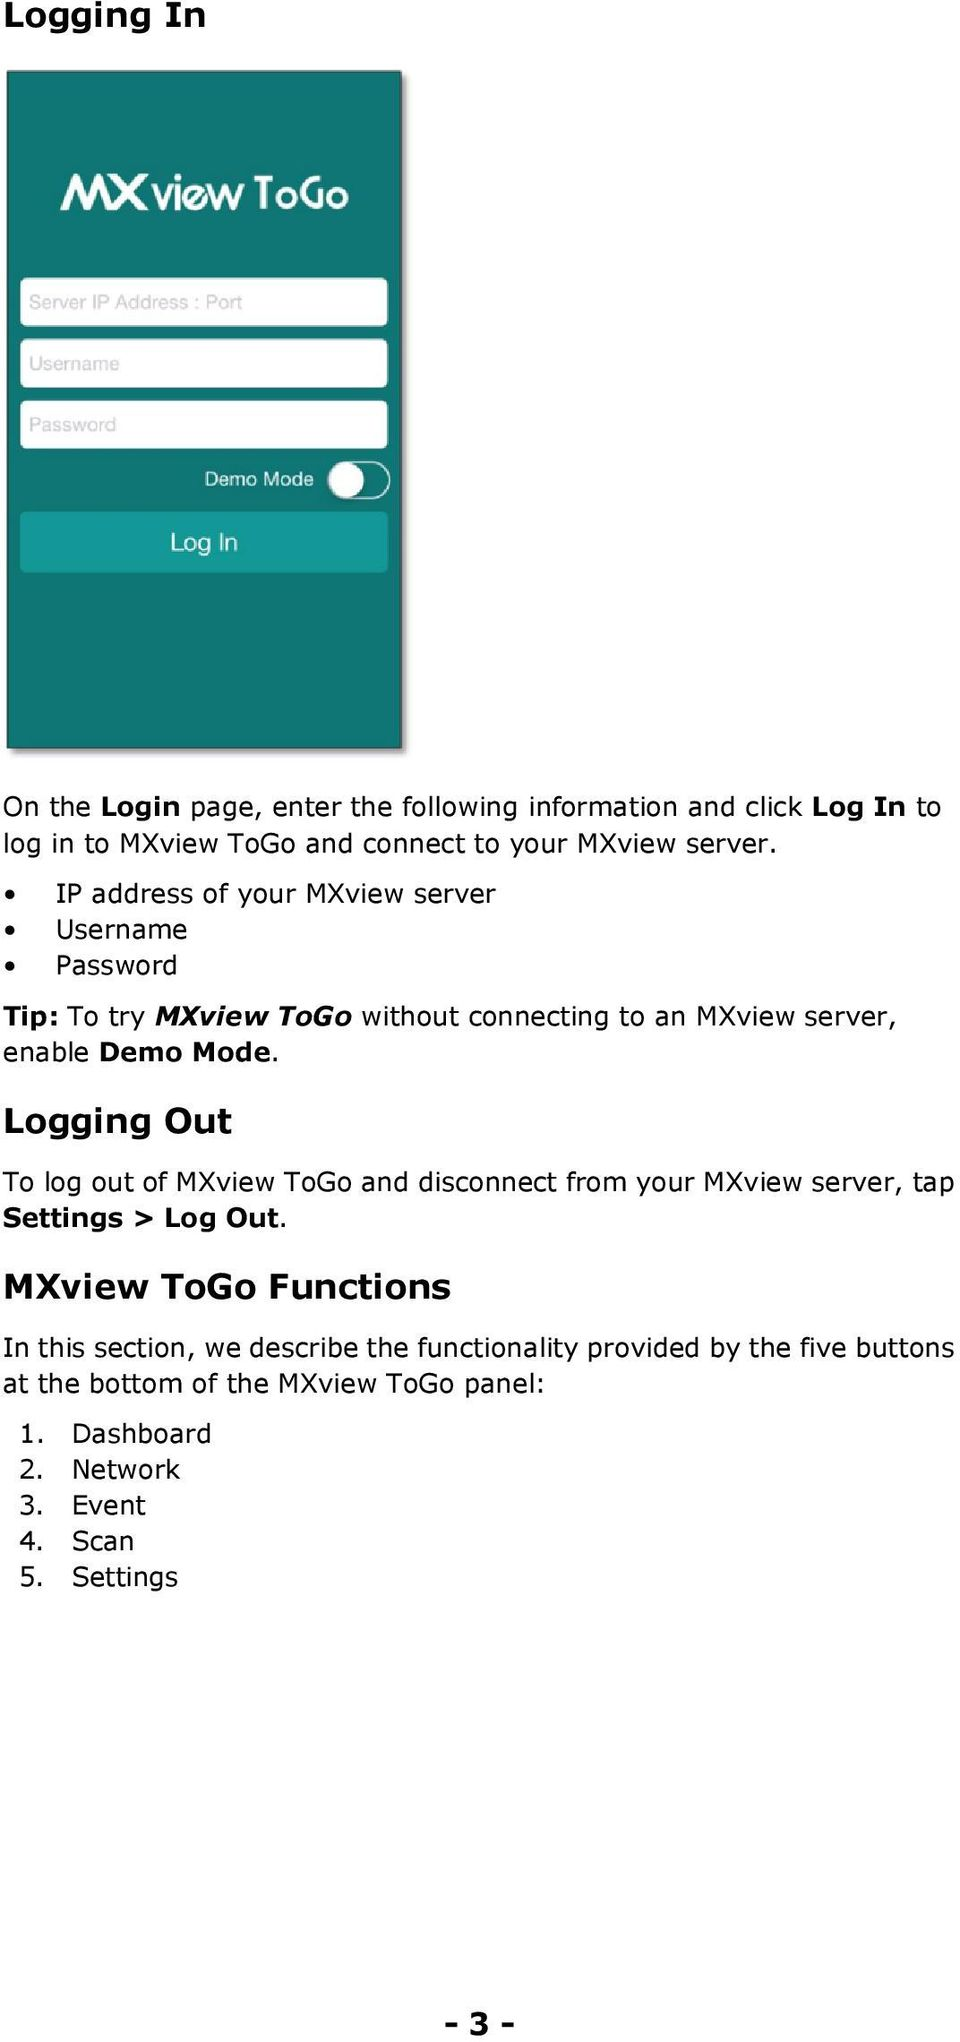 Logging Out To log out of MXview ToGo and disconnect from your MXview server, tap Settings > Log Out.